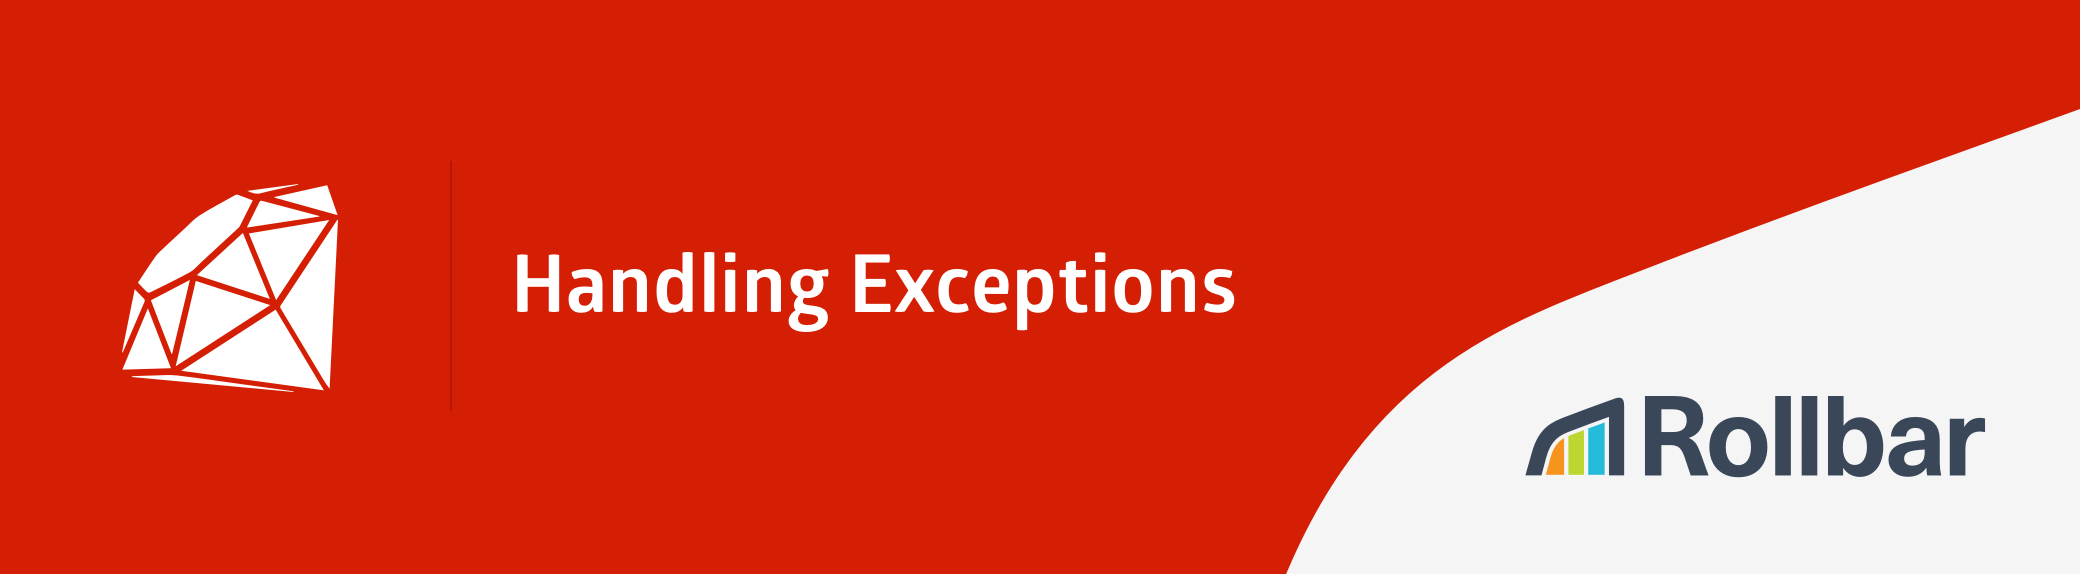 Ruby handling exceptions